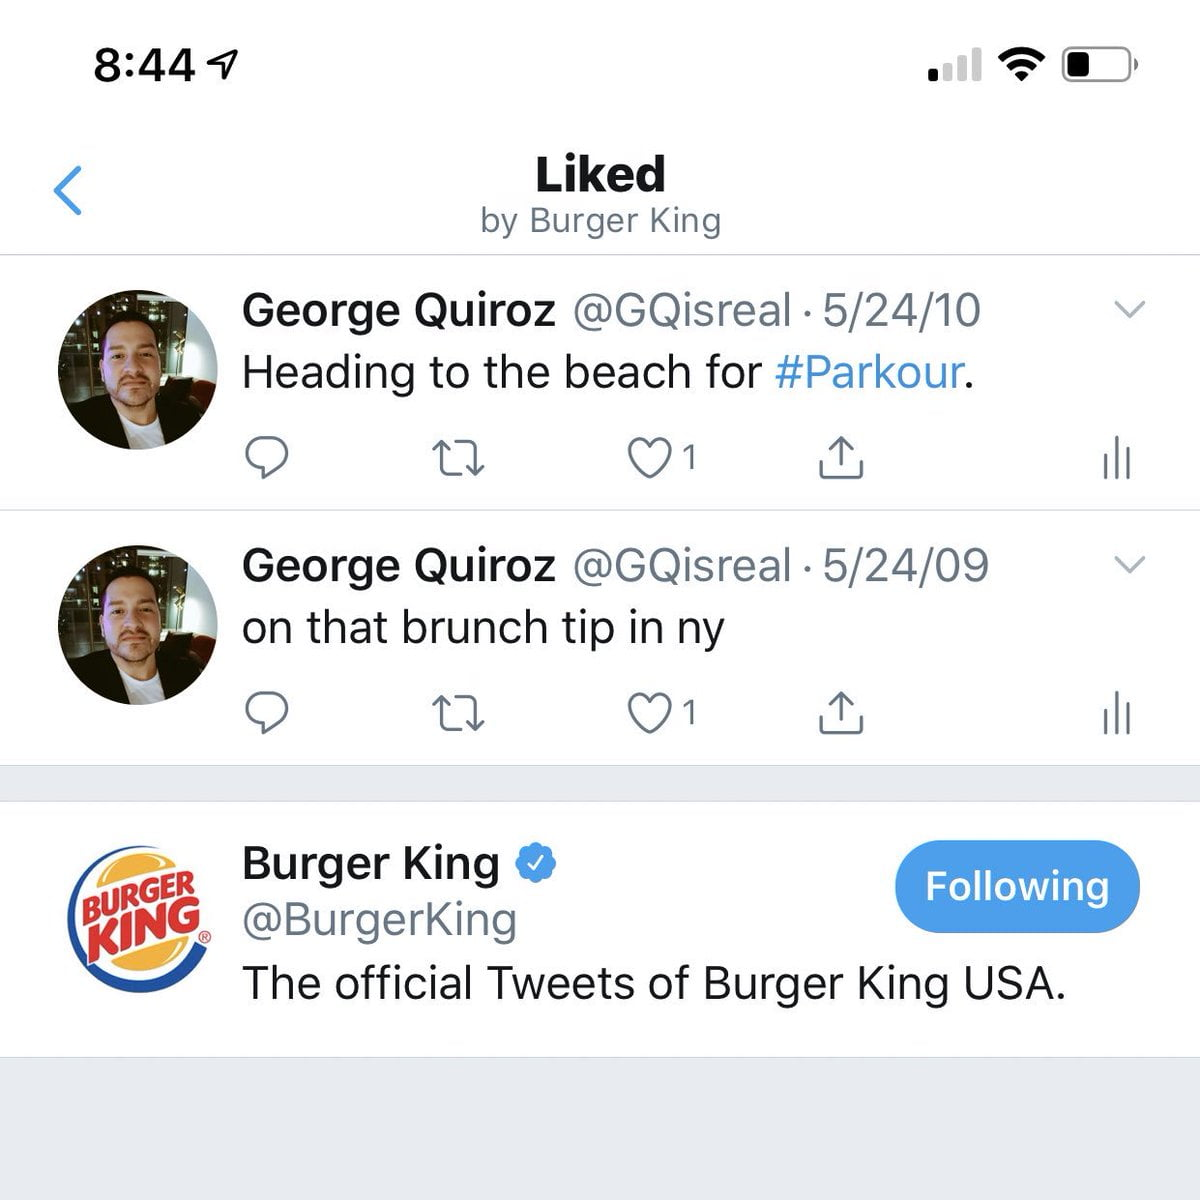 Burger King posted this question on Twitter